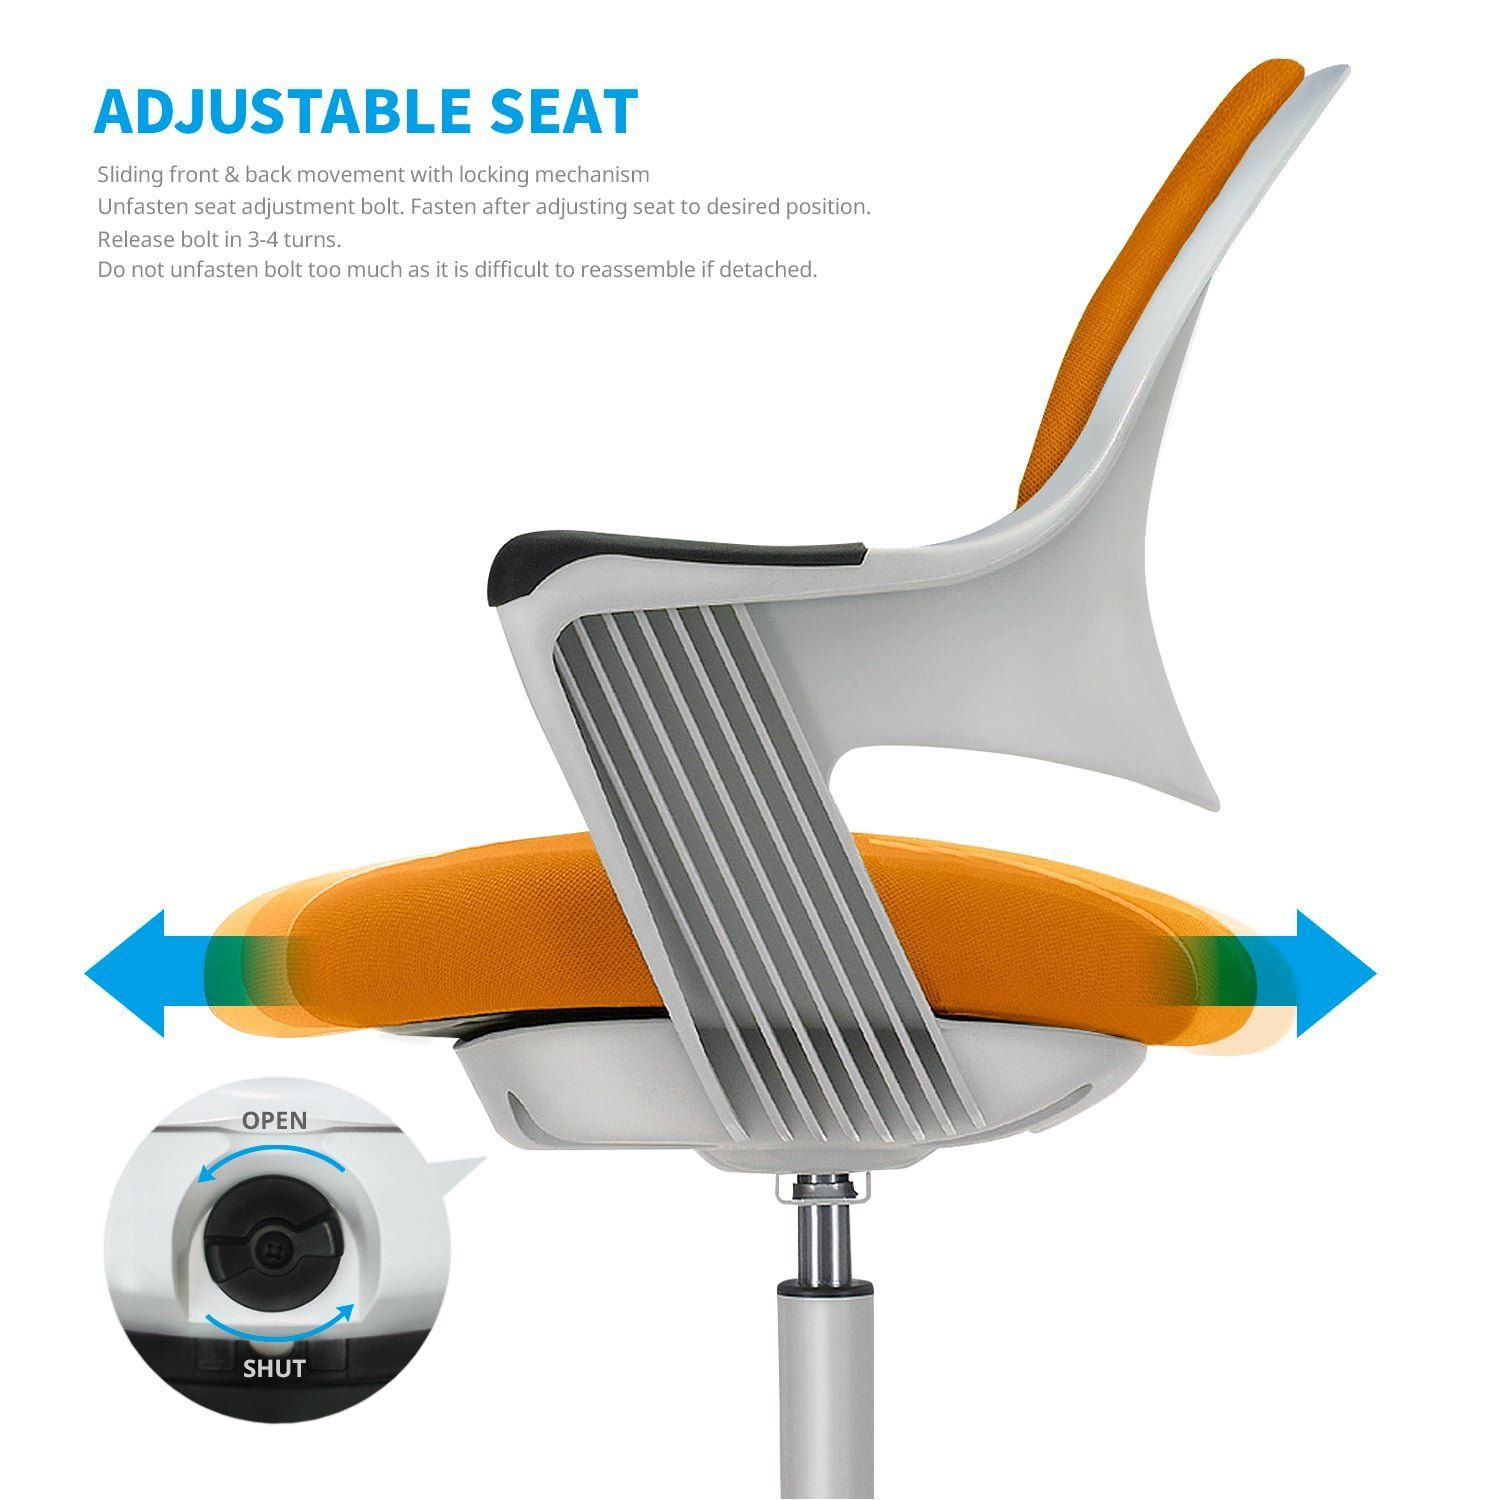 Pin by Hardy Lo on ID Board Reassembled, Seating, Turn ons